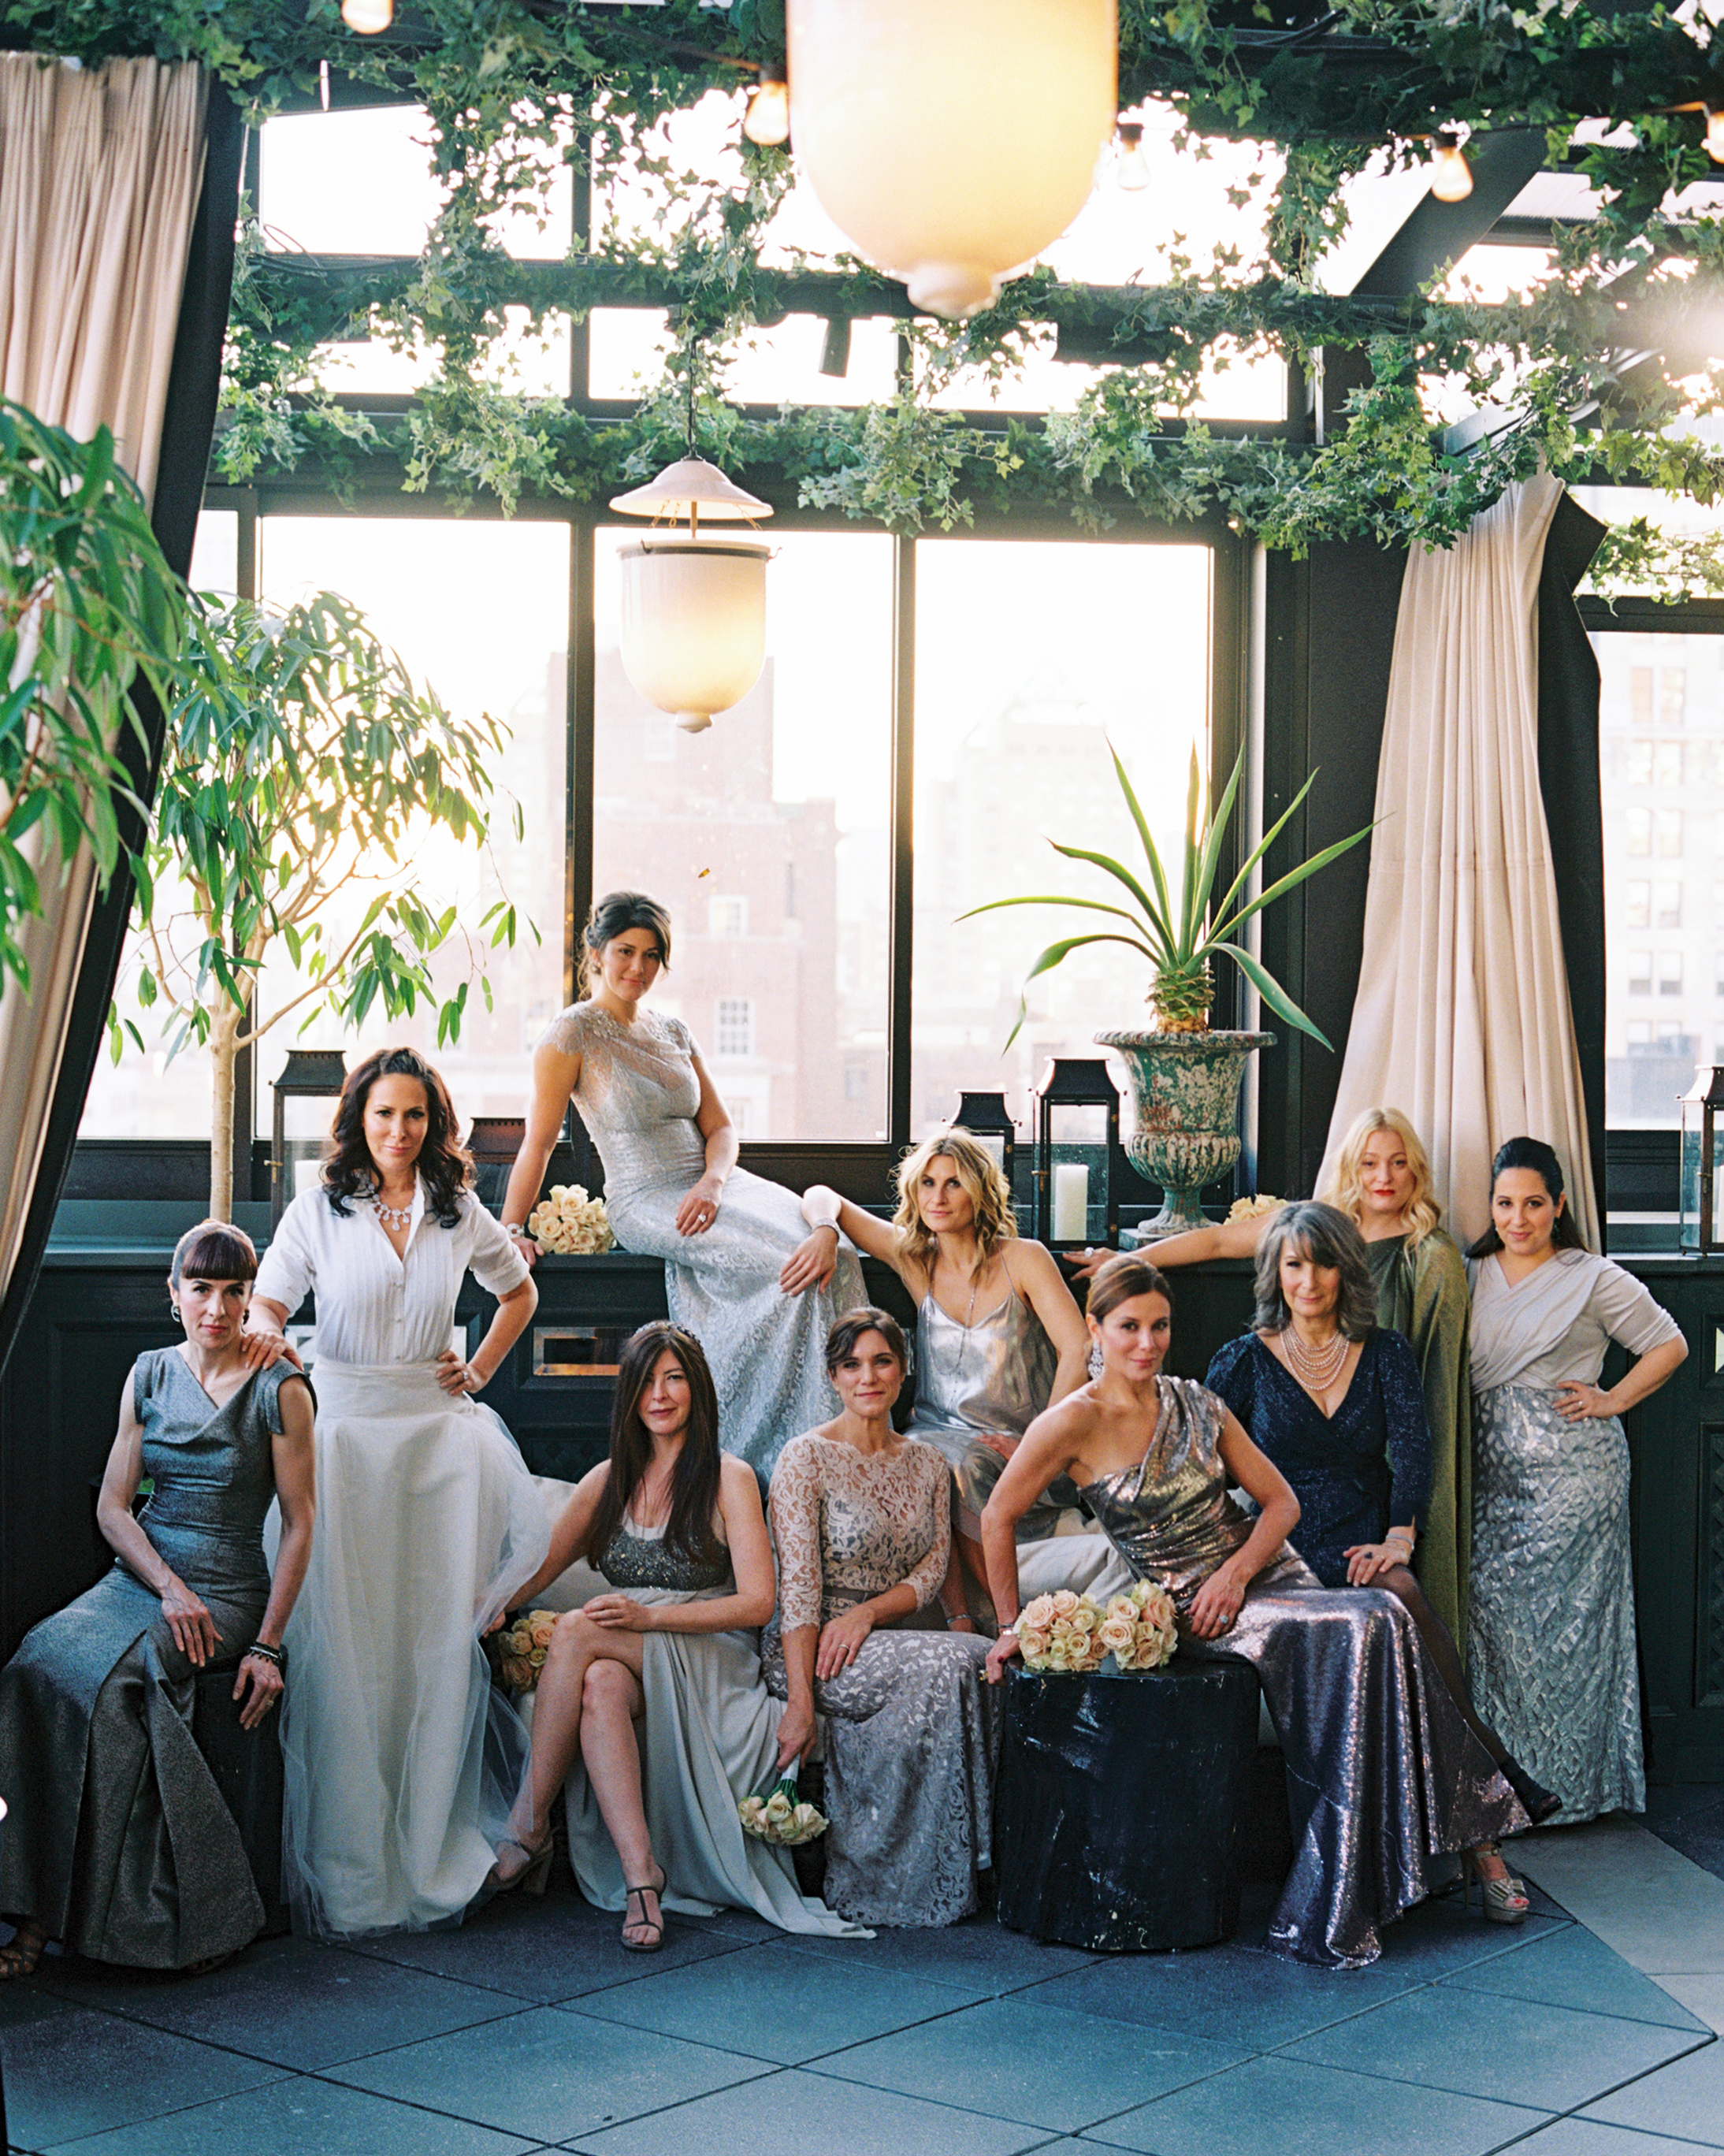 lori-jan-wedding-bridesmaids-00227-s112305-1215.jpg